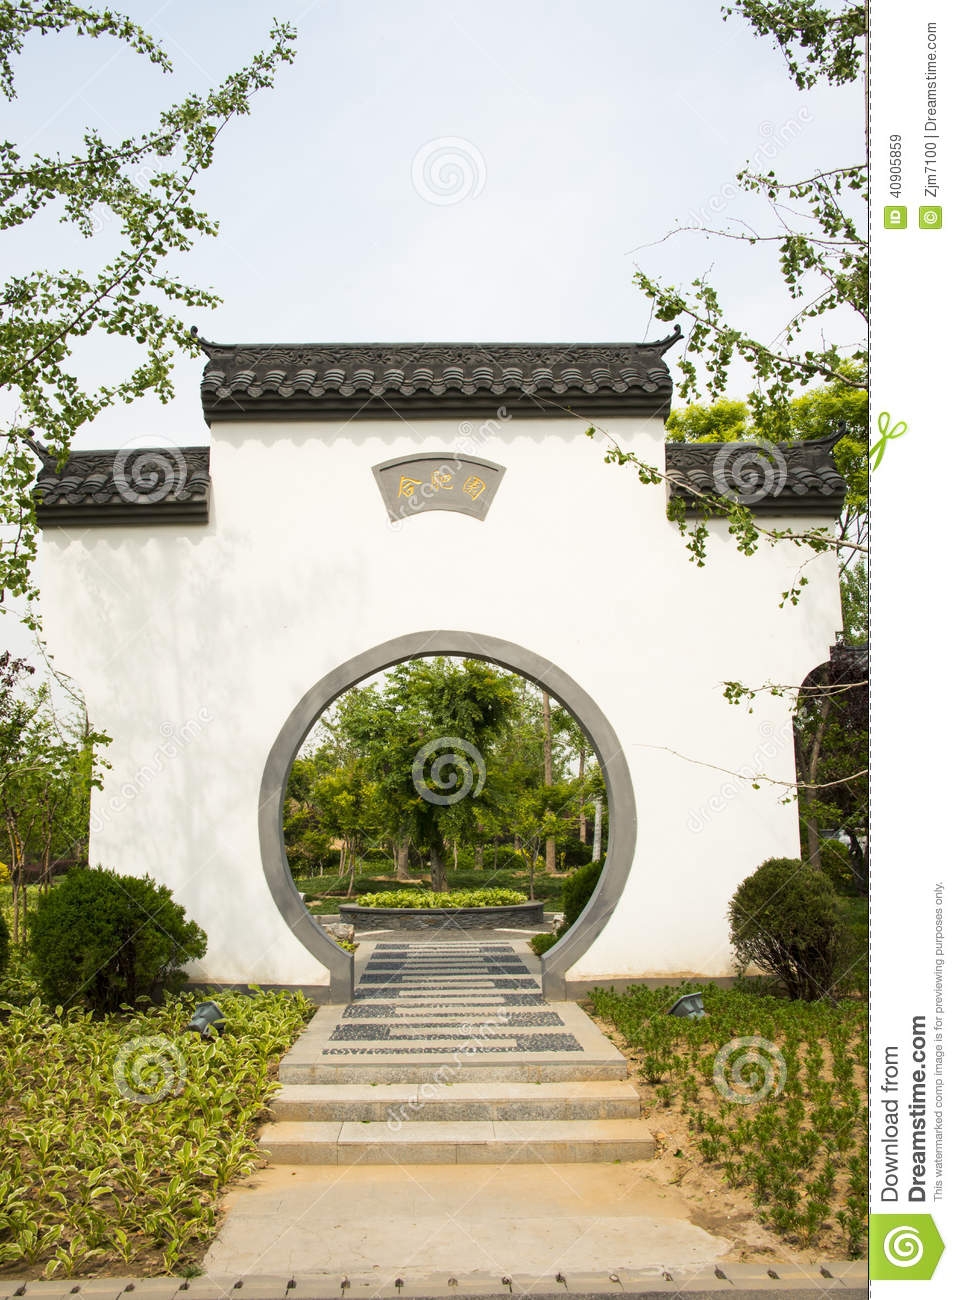 Asian china antique buildings white walls tiles stock for Round garden buildings